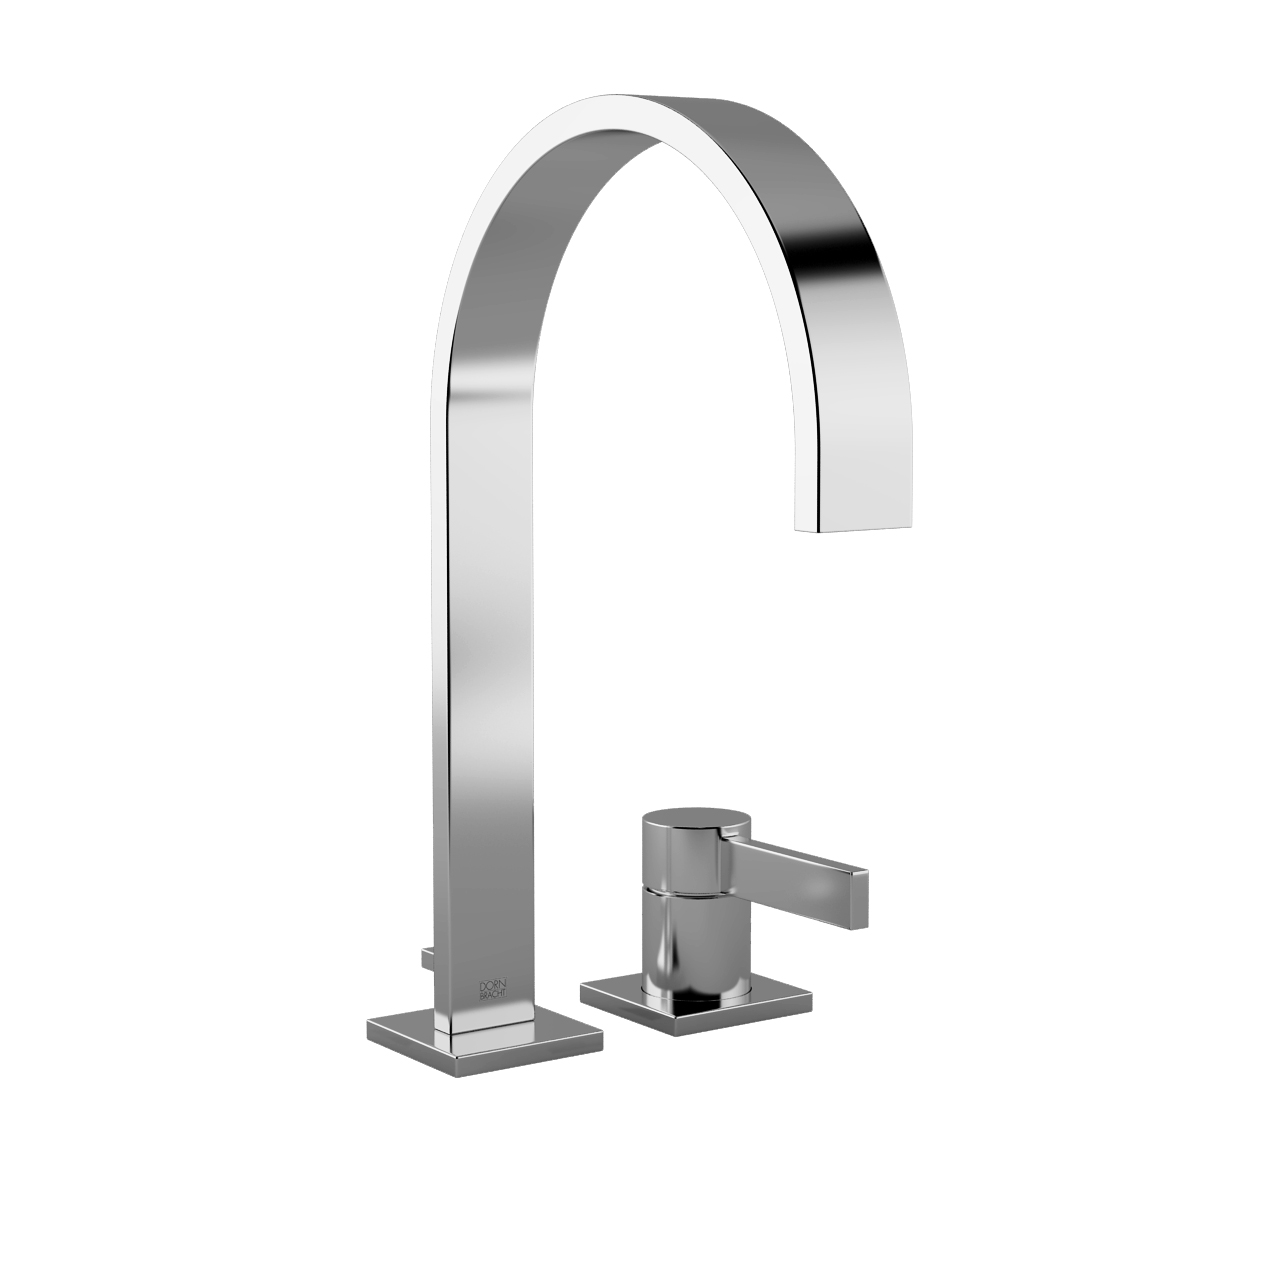 Mem Two Hole Basin Mixer by DornBracht